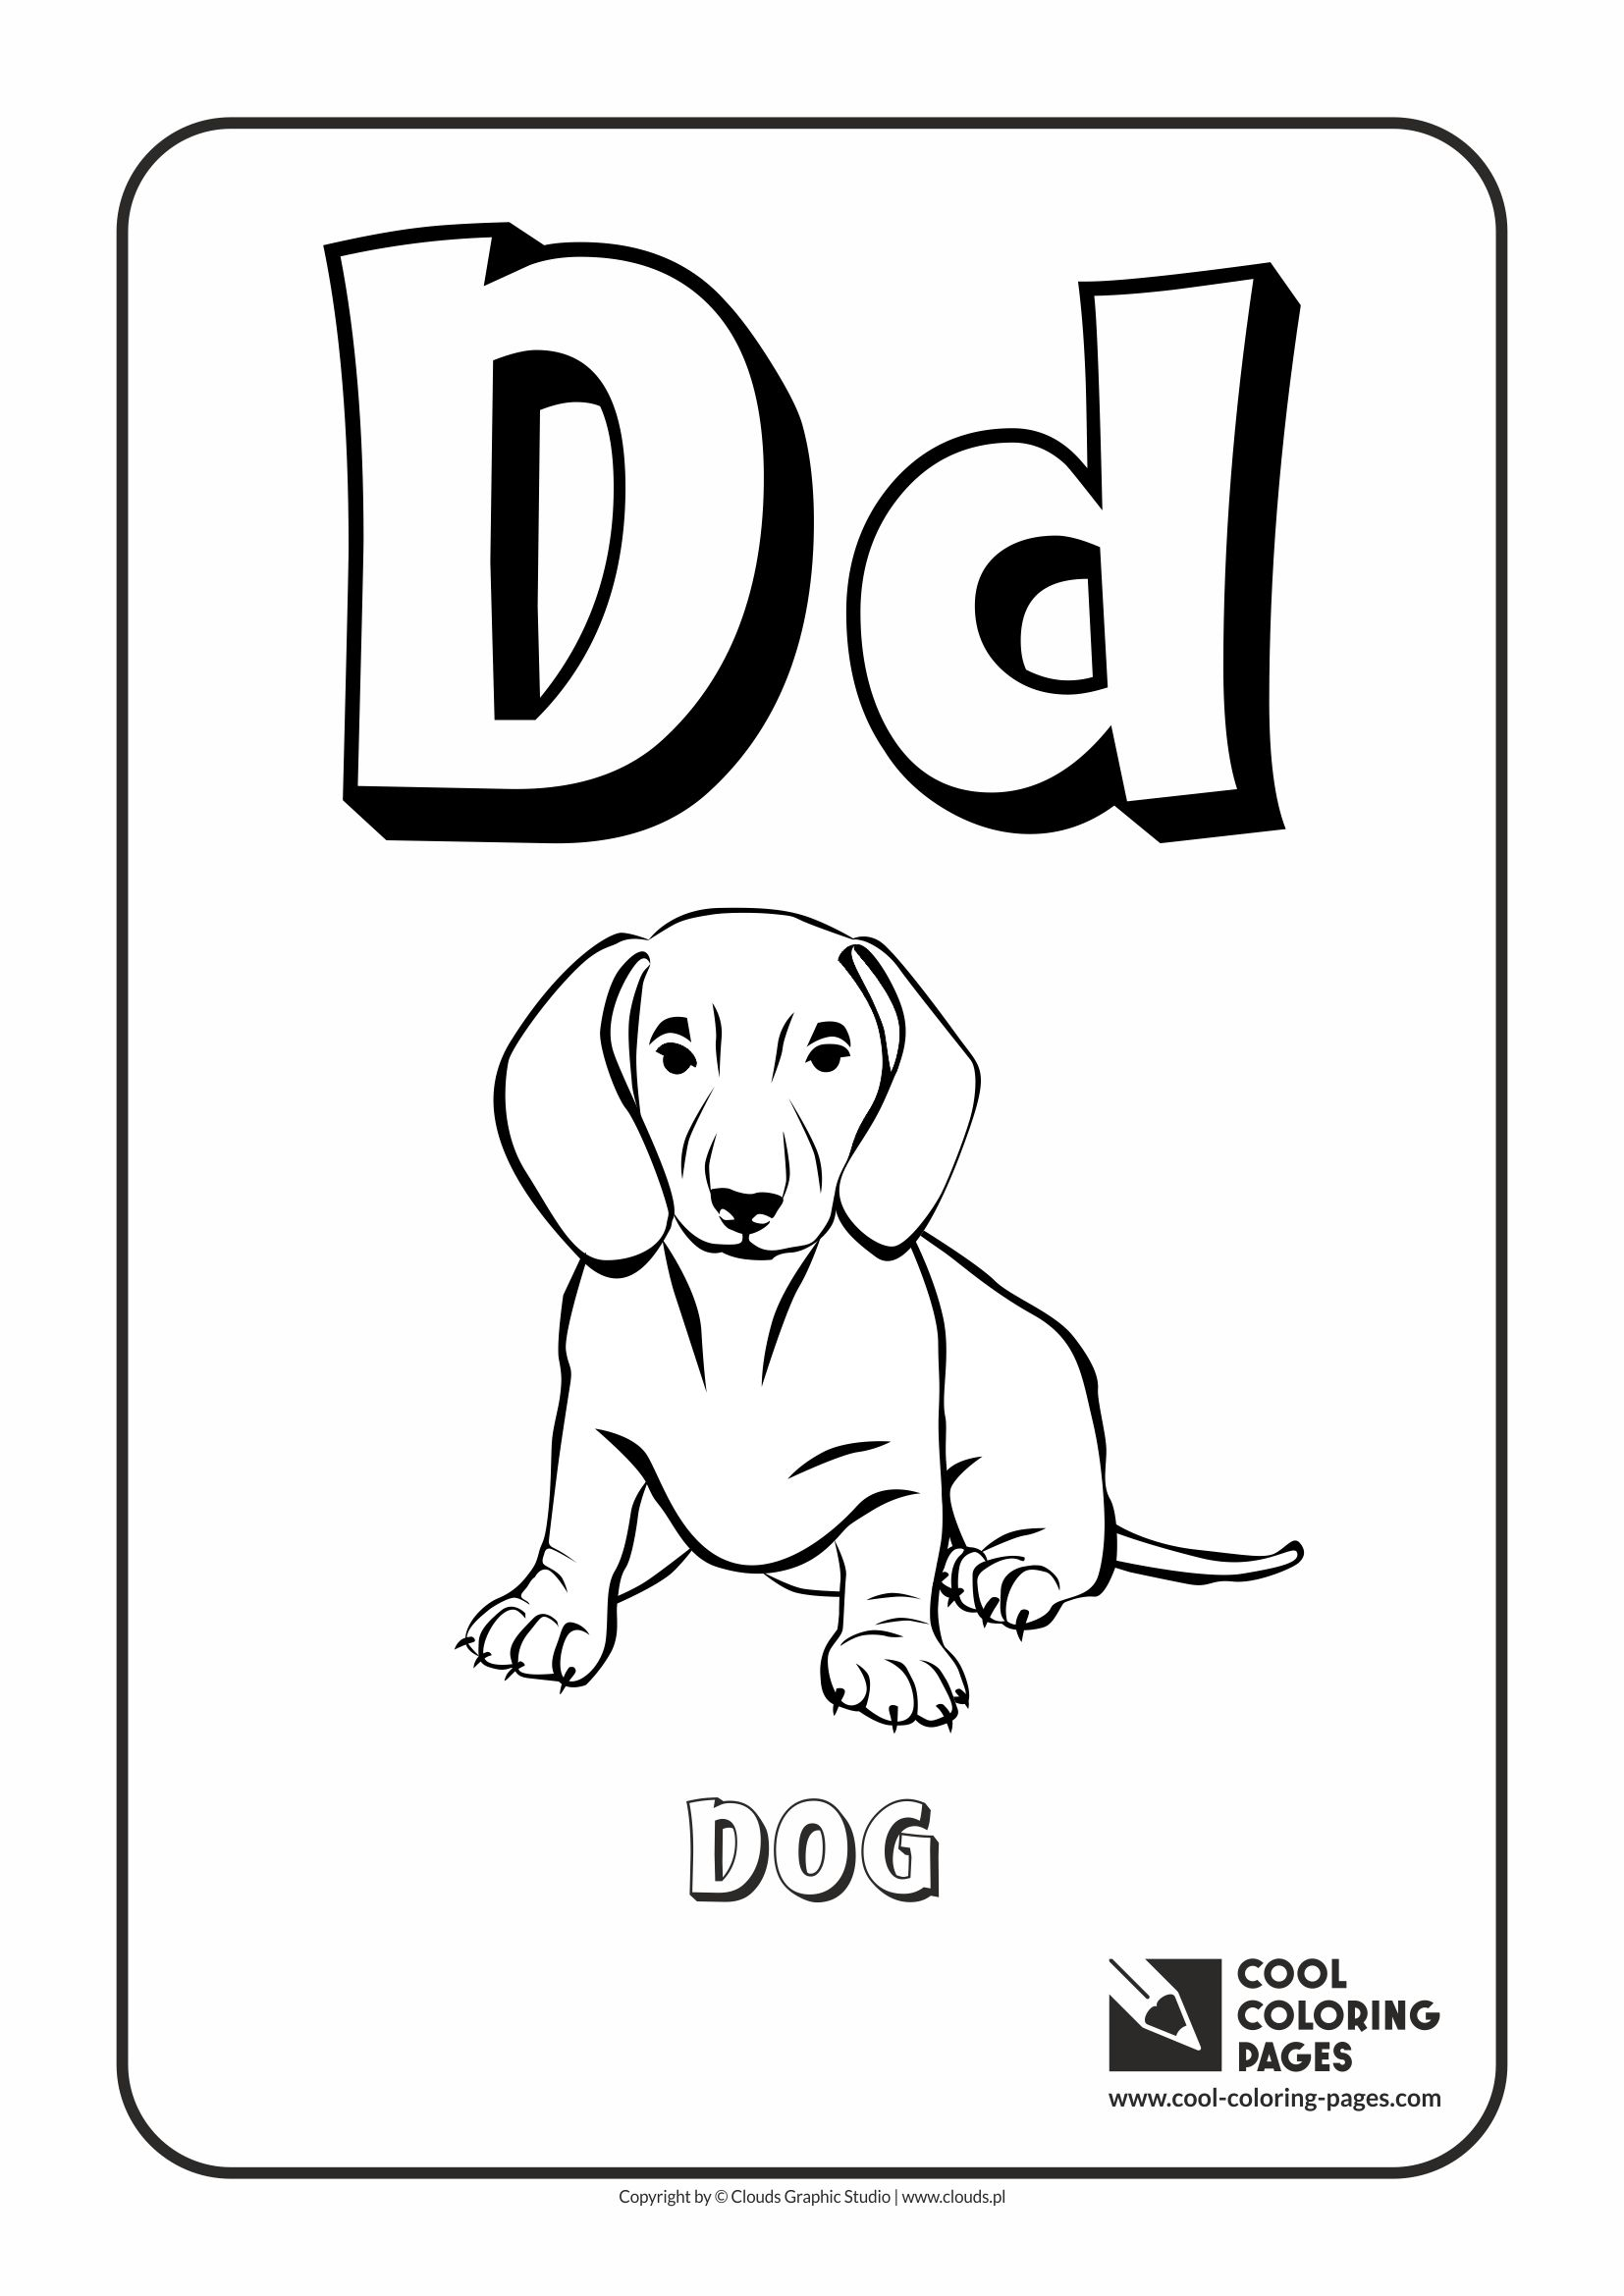 Cool Coloring Pages Alphabet coloring